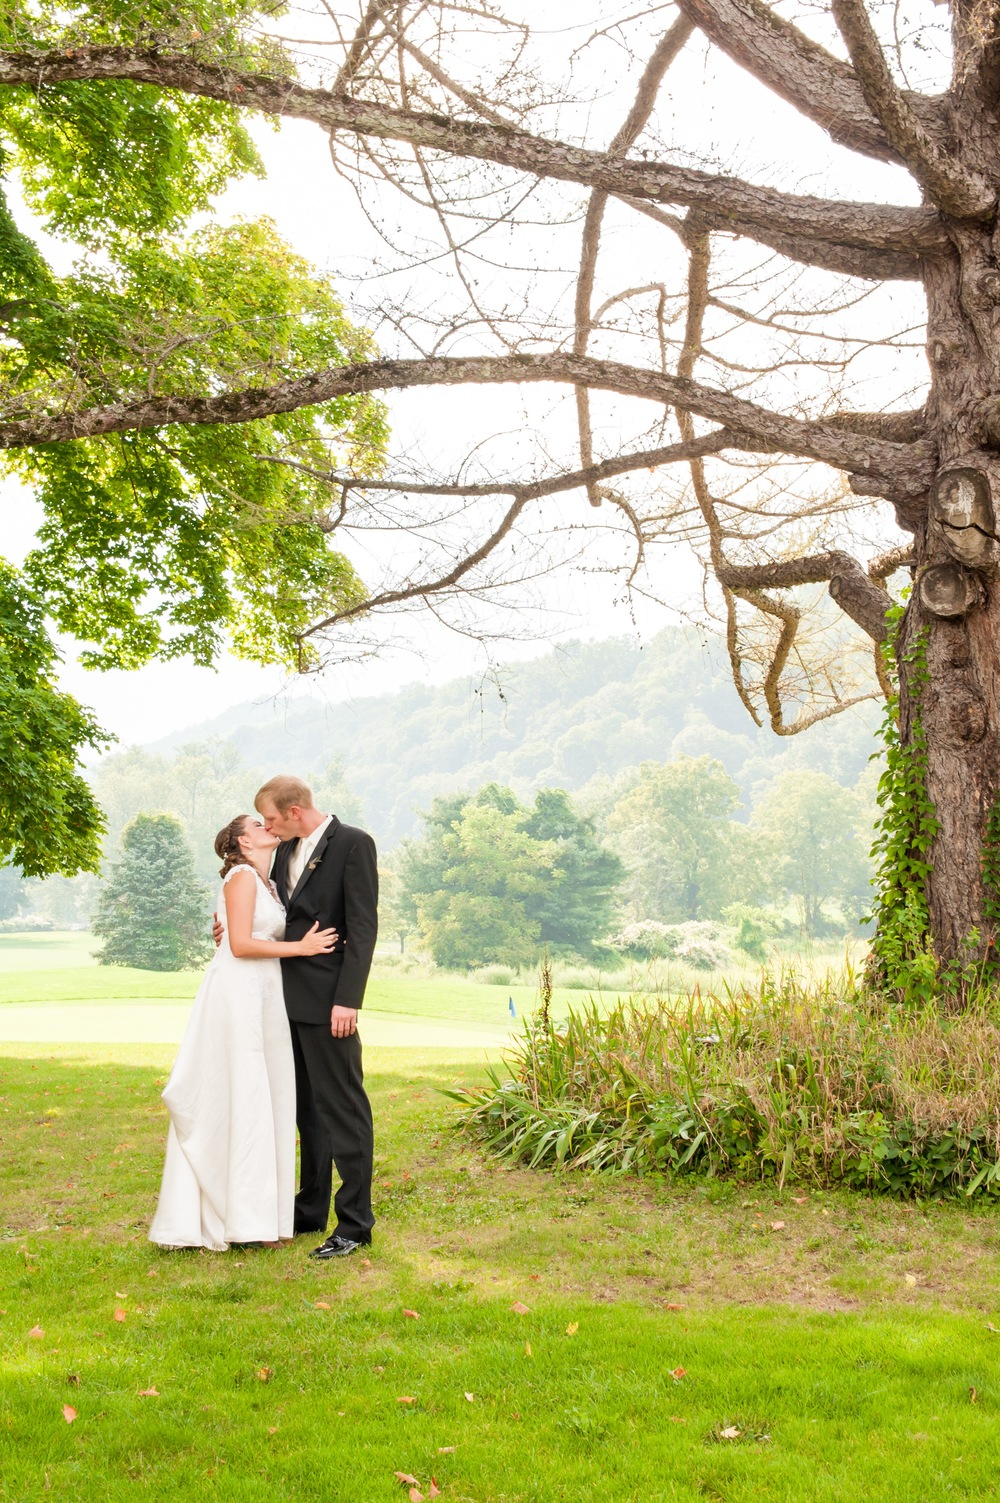 Bride and Groom Under Tree at Shawnee Inn, Pennsylvania